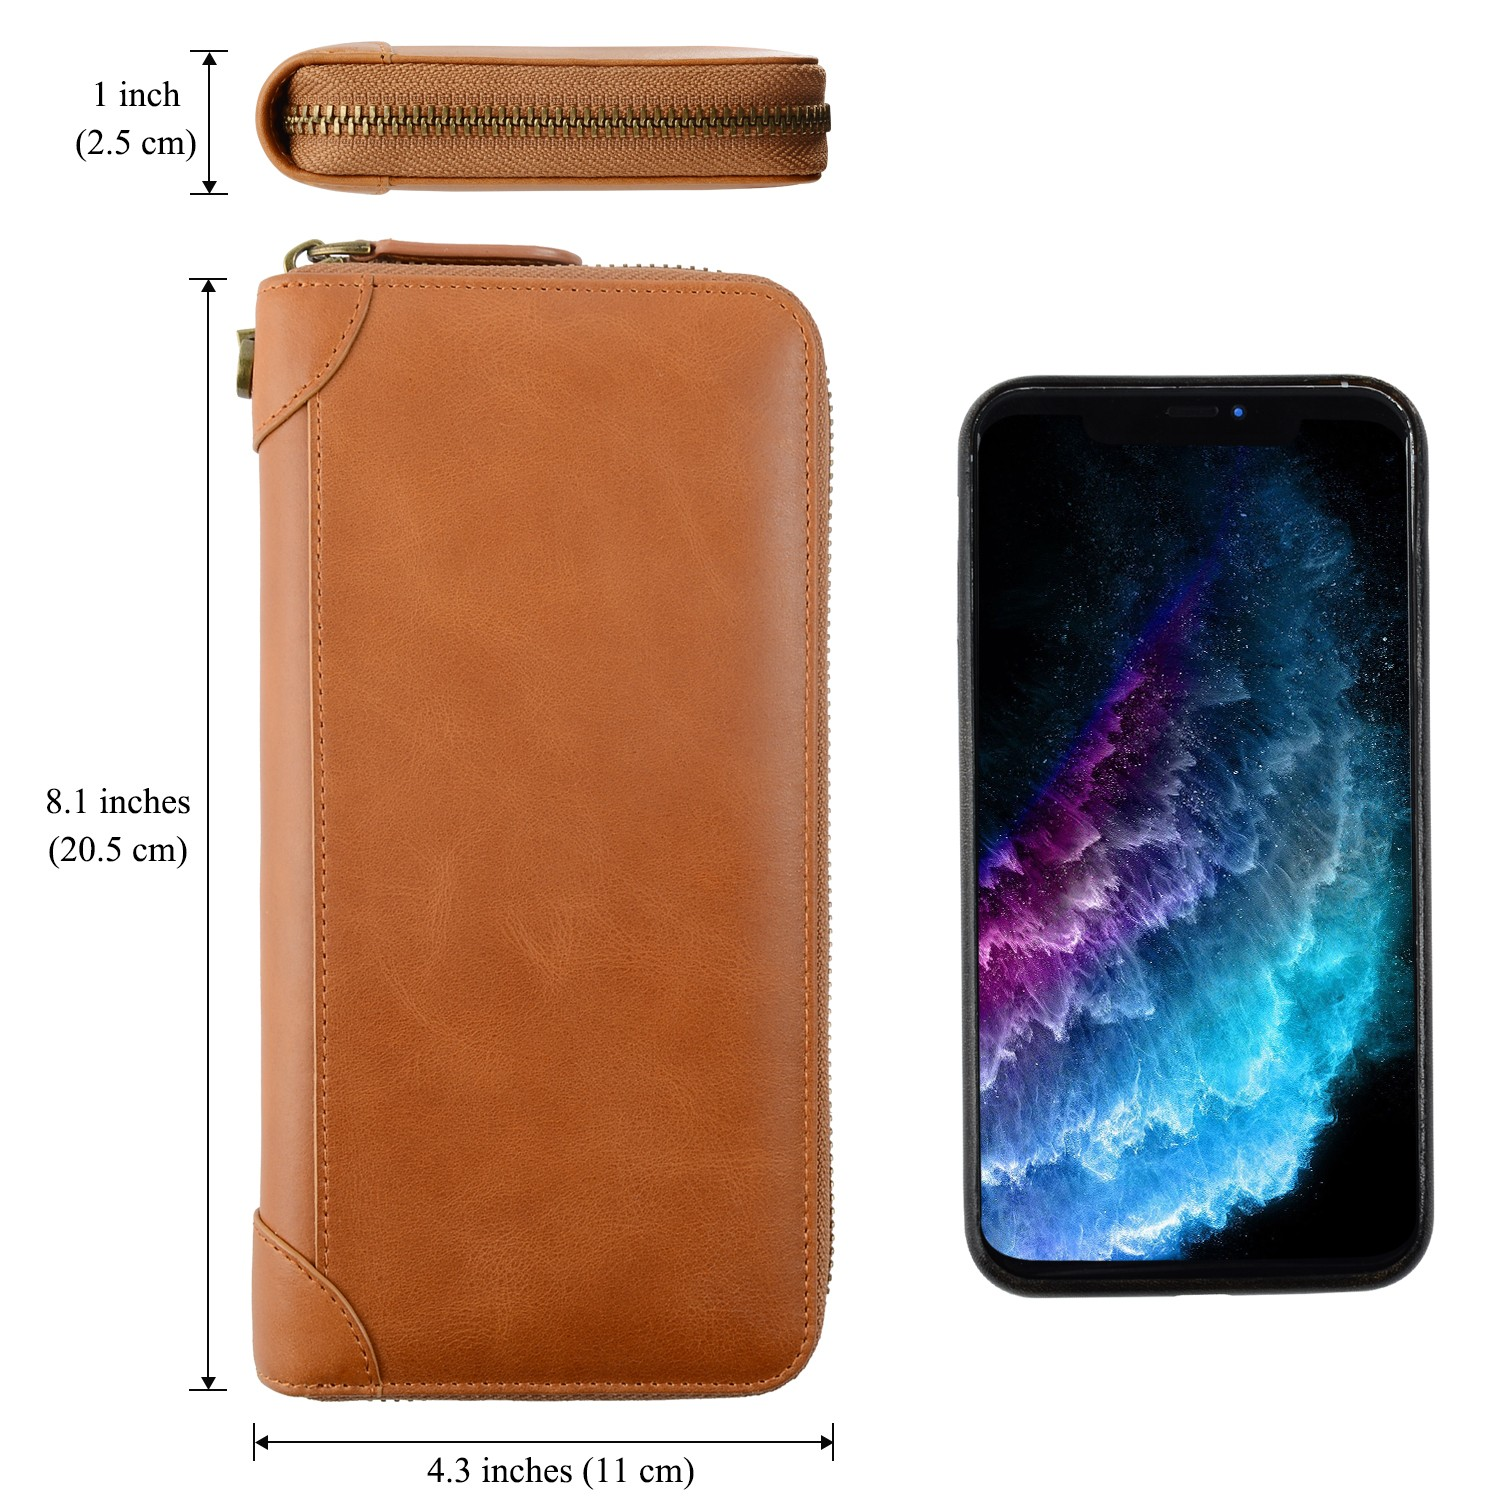 AIVI soft leather card holder wallet mens supply for phone XS Max-5